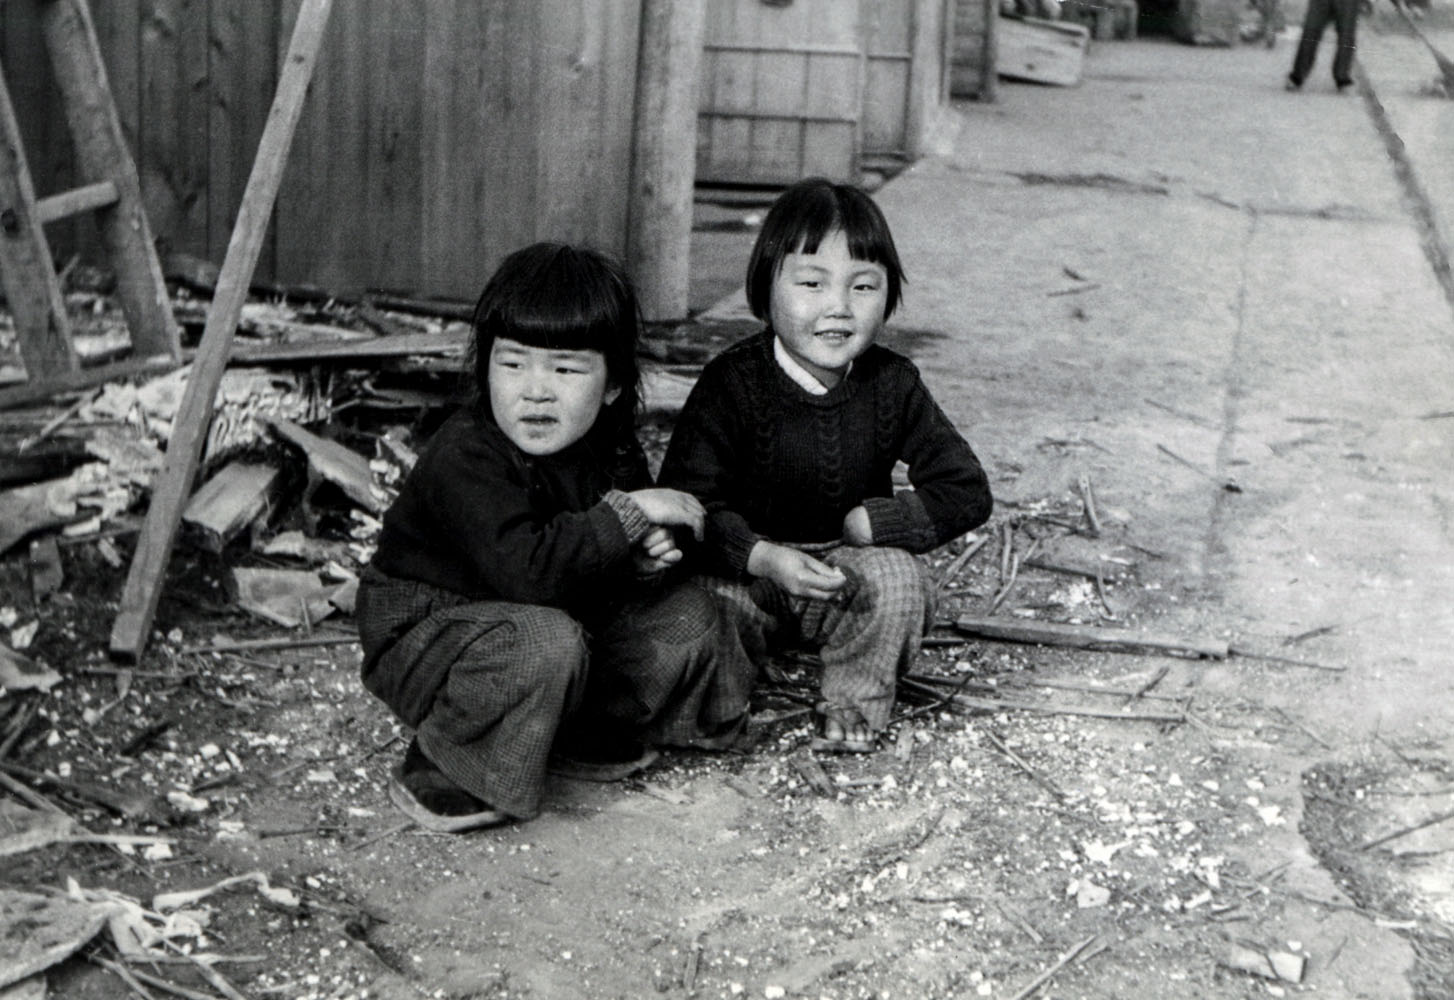 21- Two young girls